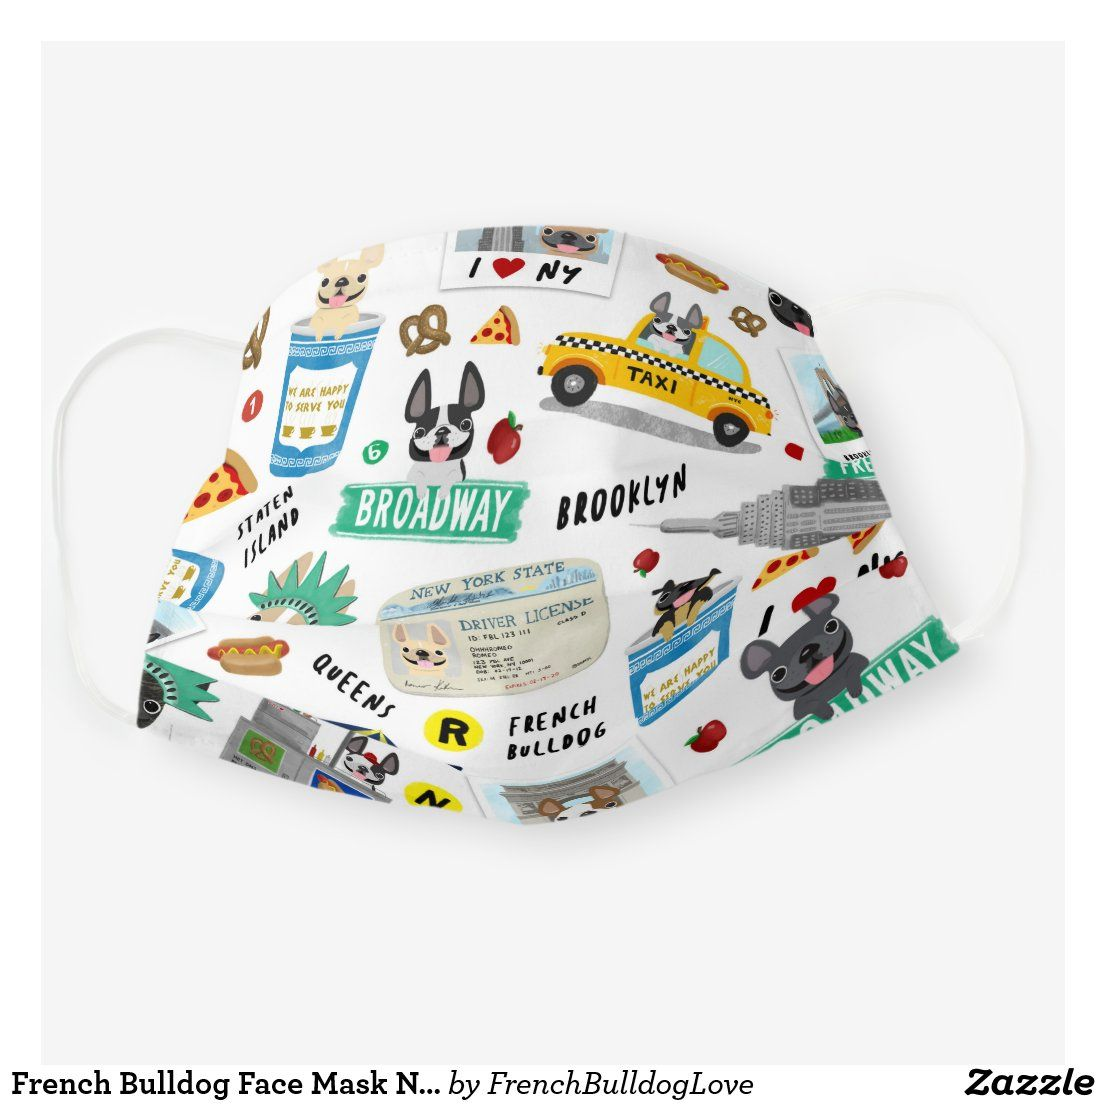 French Bulldog Face Mask Nyc Frenchies Zazzle Com In 2020 French Bulldog French Bulldog Gifts Bulldog